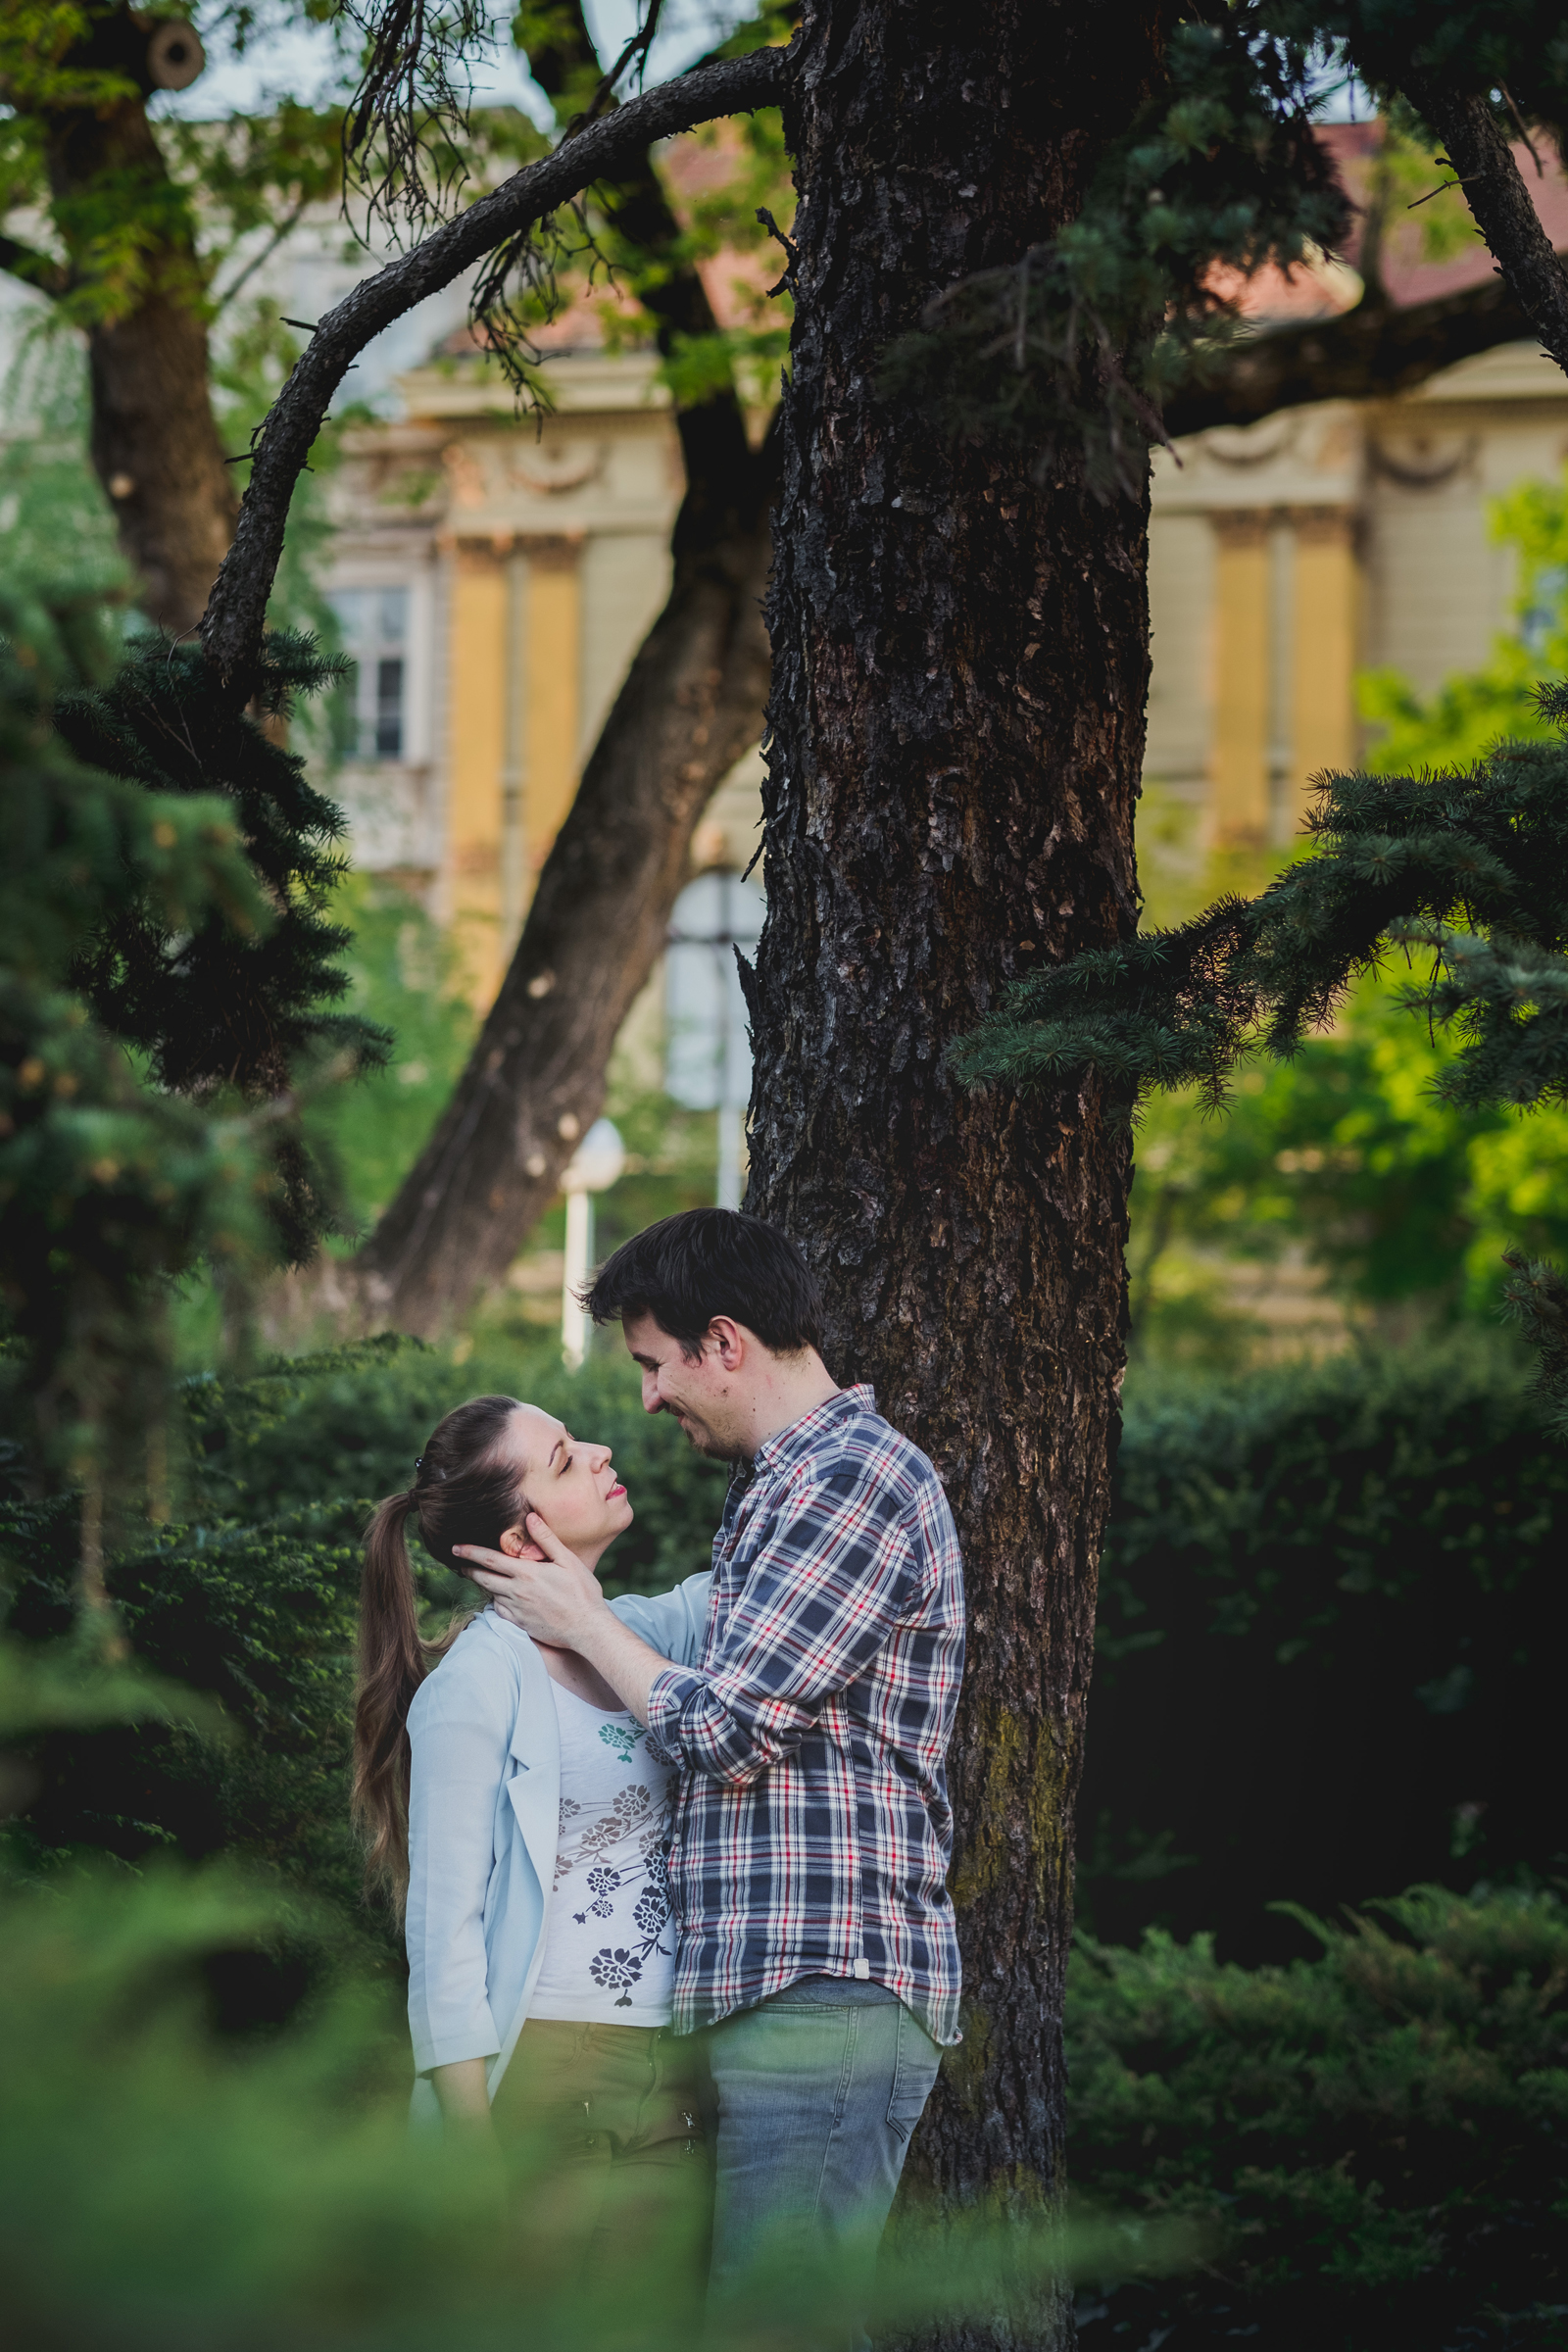 couple kissing under the tree. Film shot, Fuji 400h, Mamiya 645 PRO TL medium format camera, sekor 45mm f.28